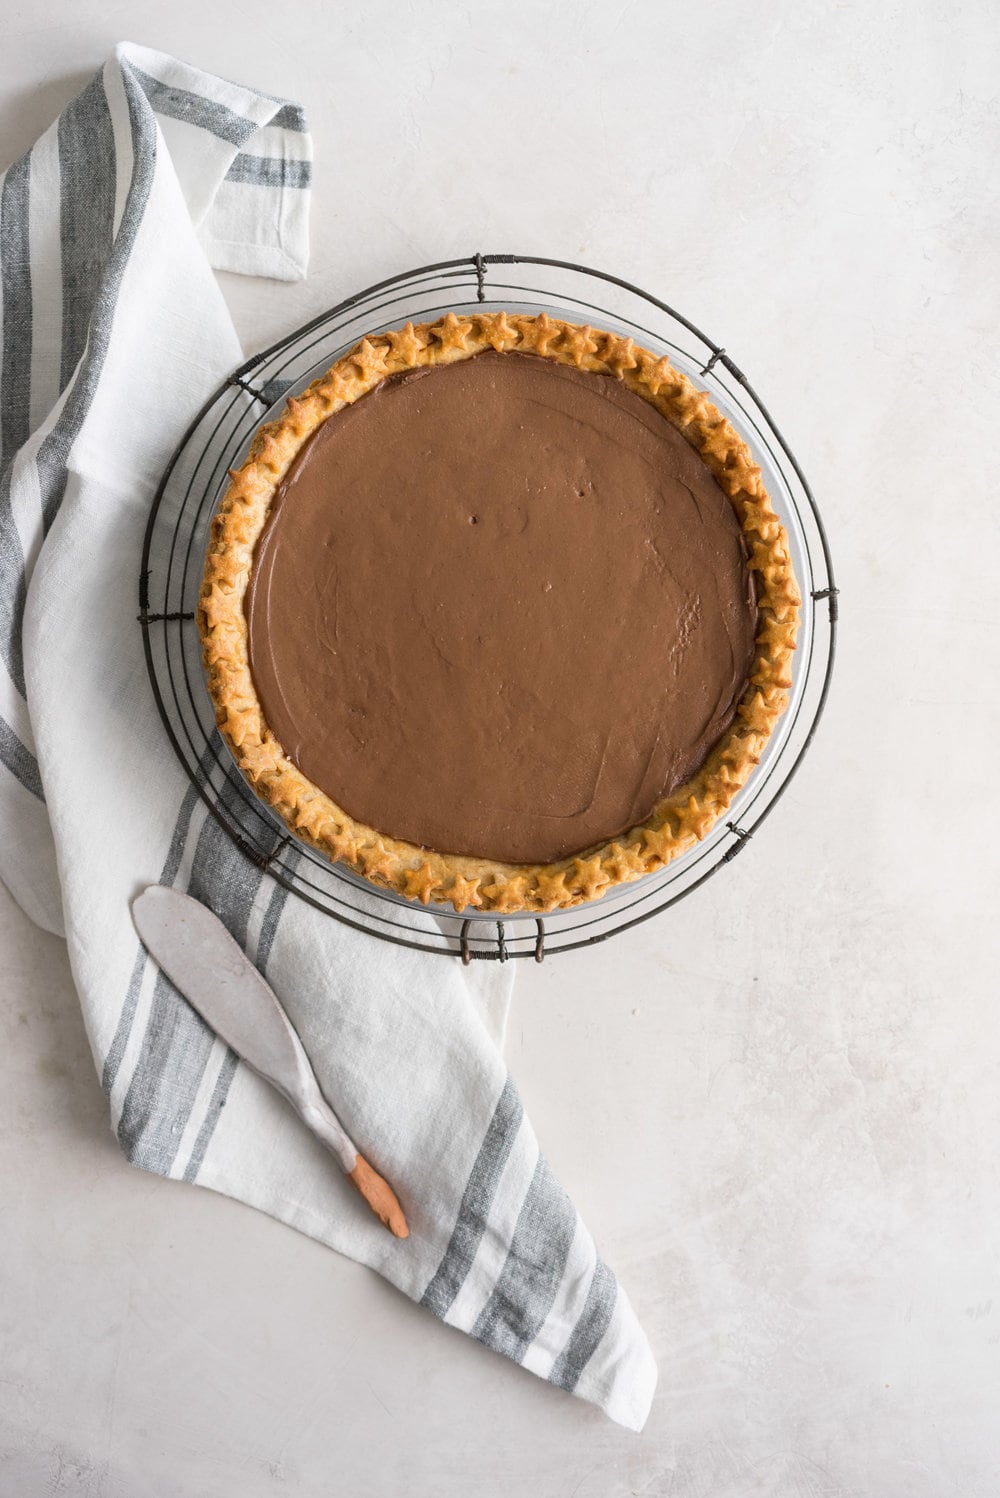 Chocolate Cream Pie with a peanut butter pie dough and a Whipped Peanut Butter Cream